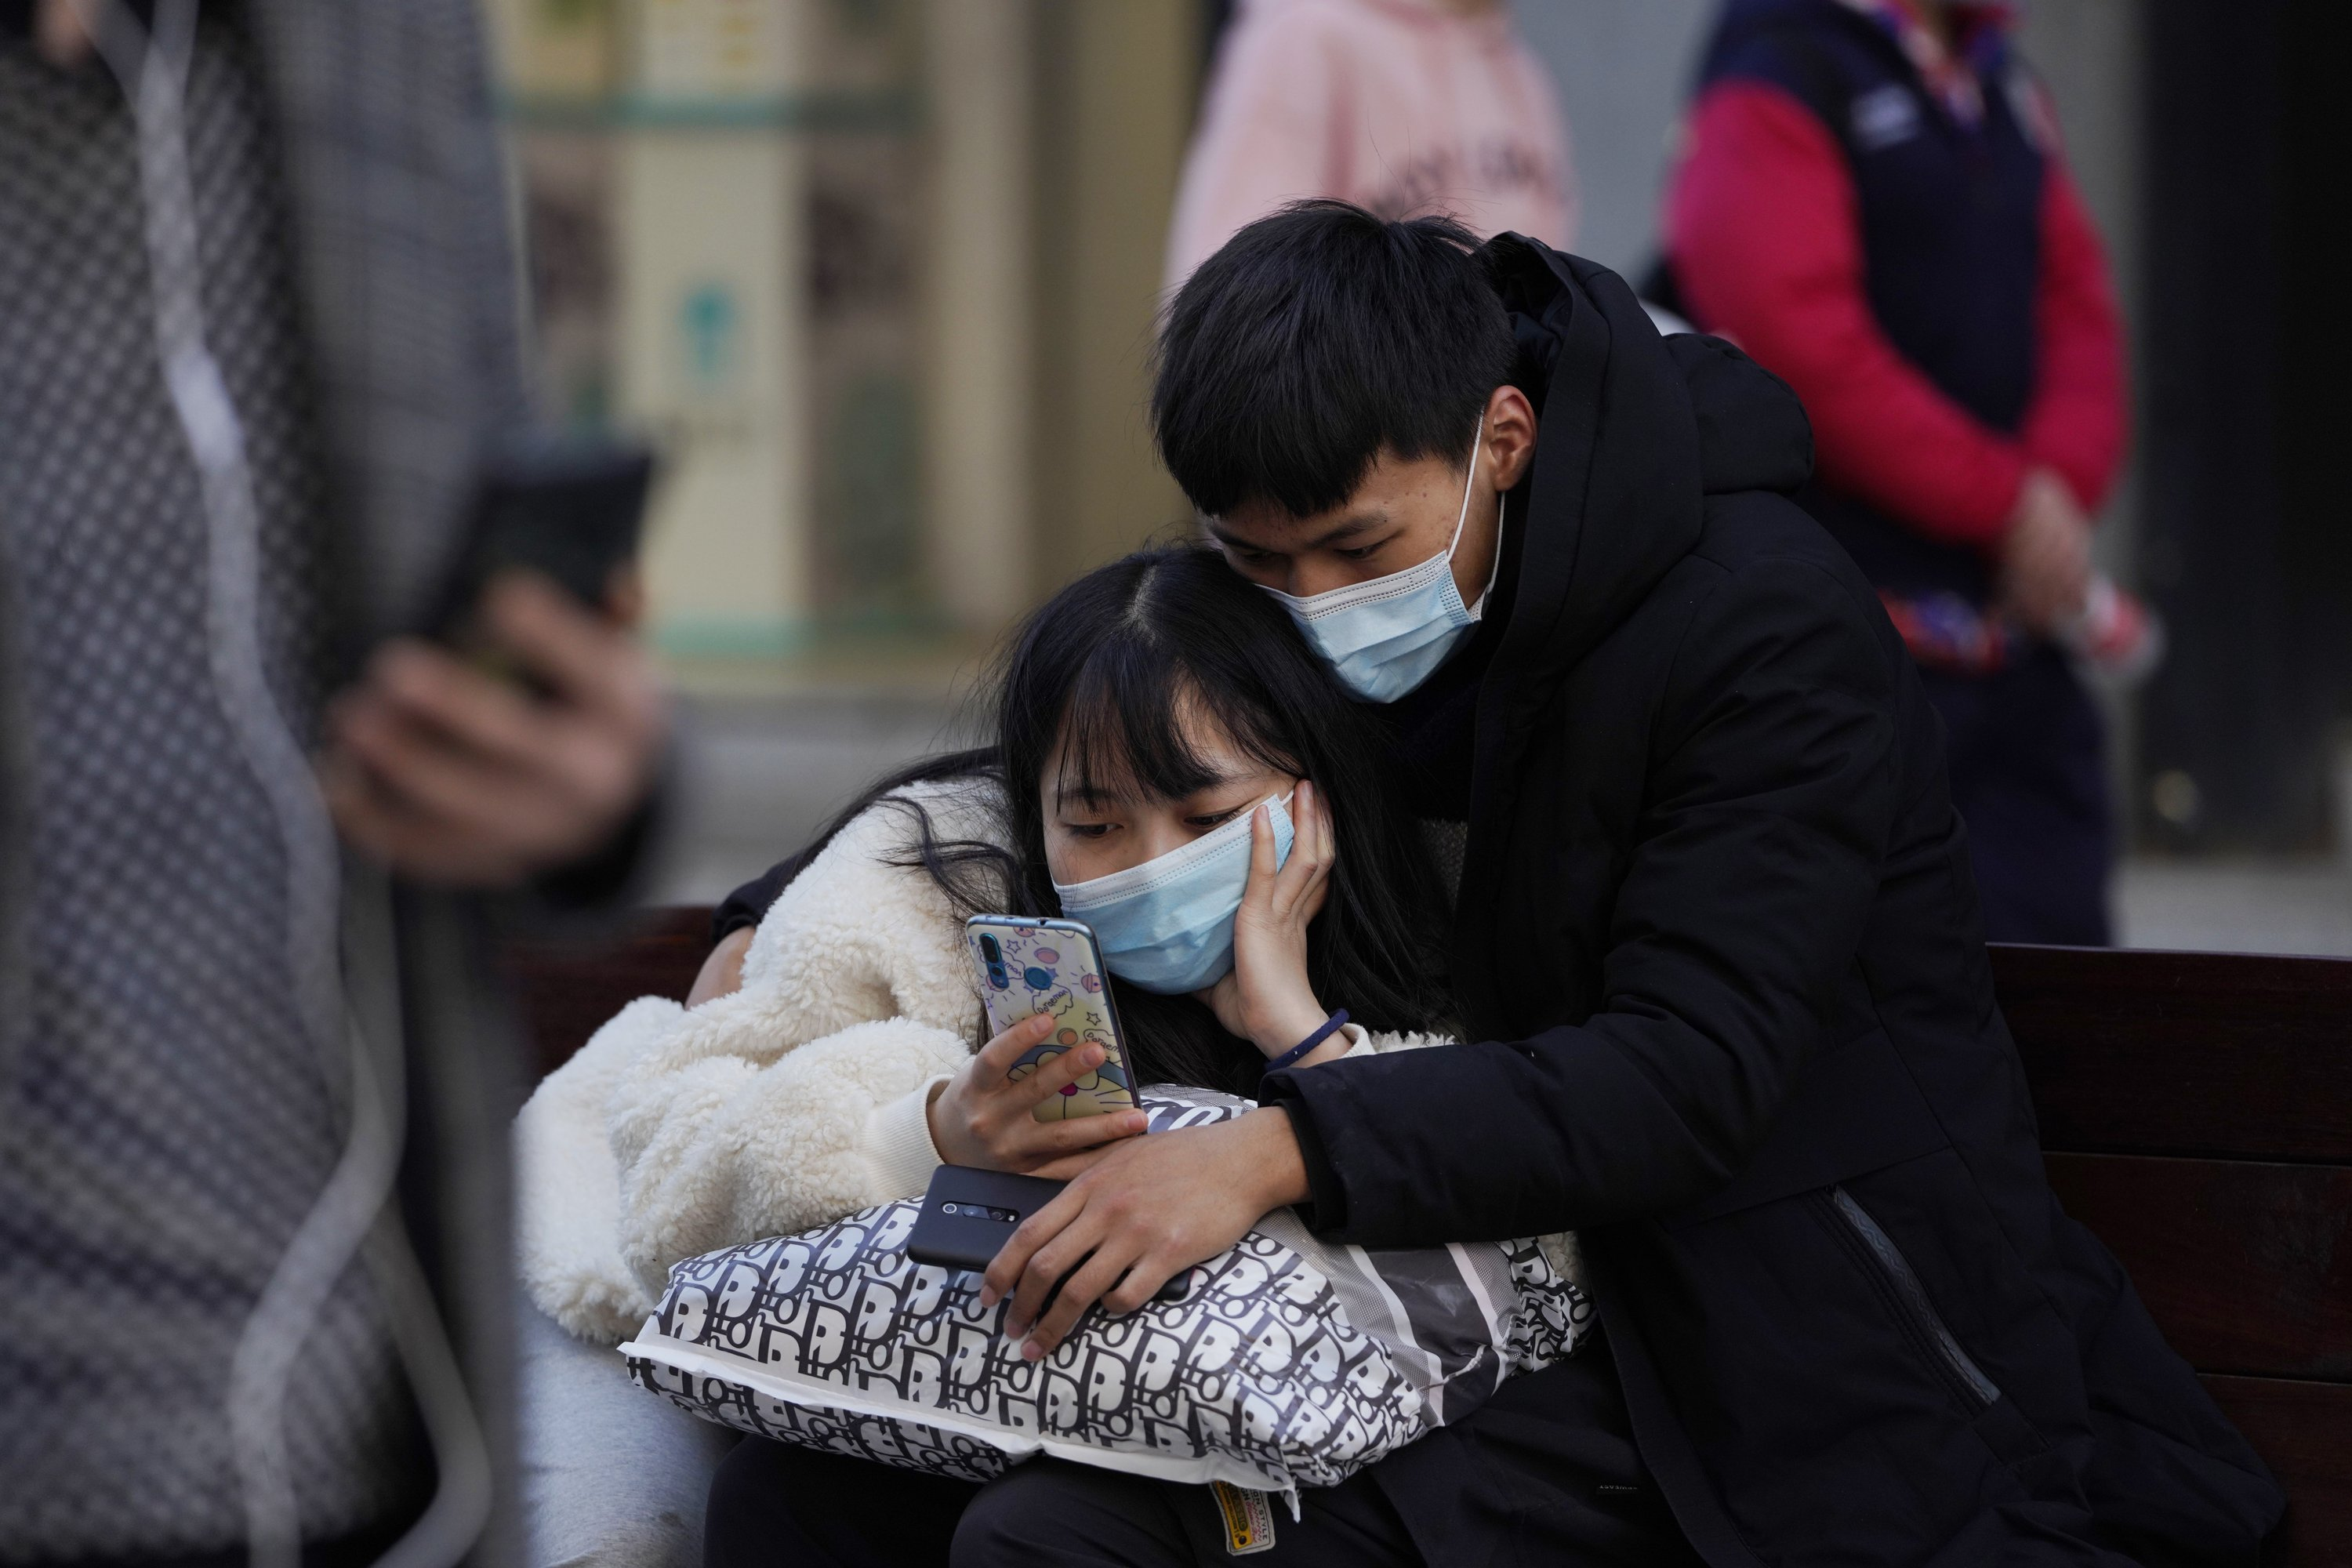 apnews.com: Asia Today: China virus cases spike as WHO researchers visit